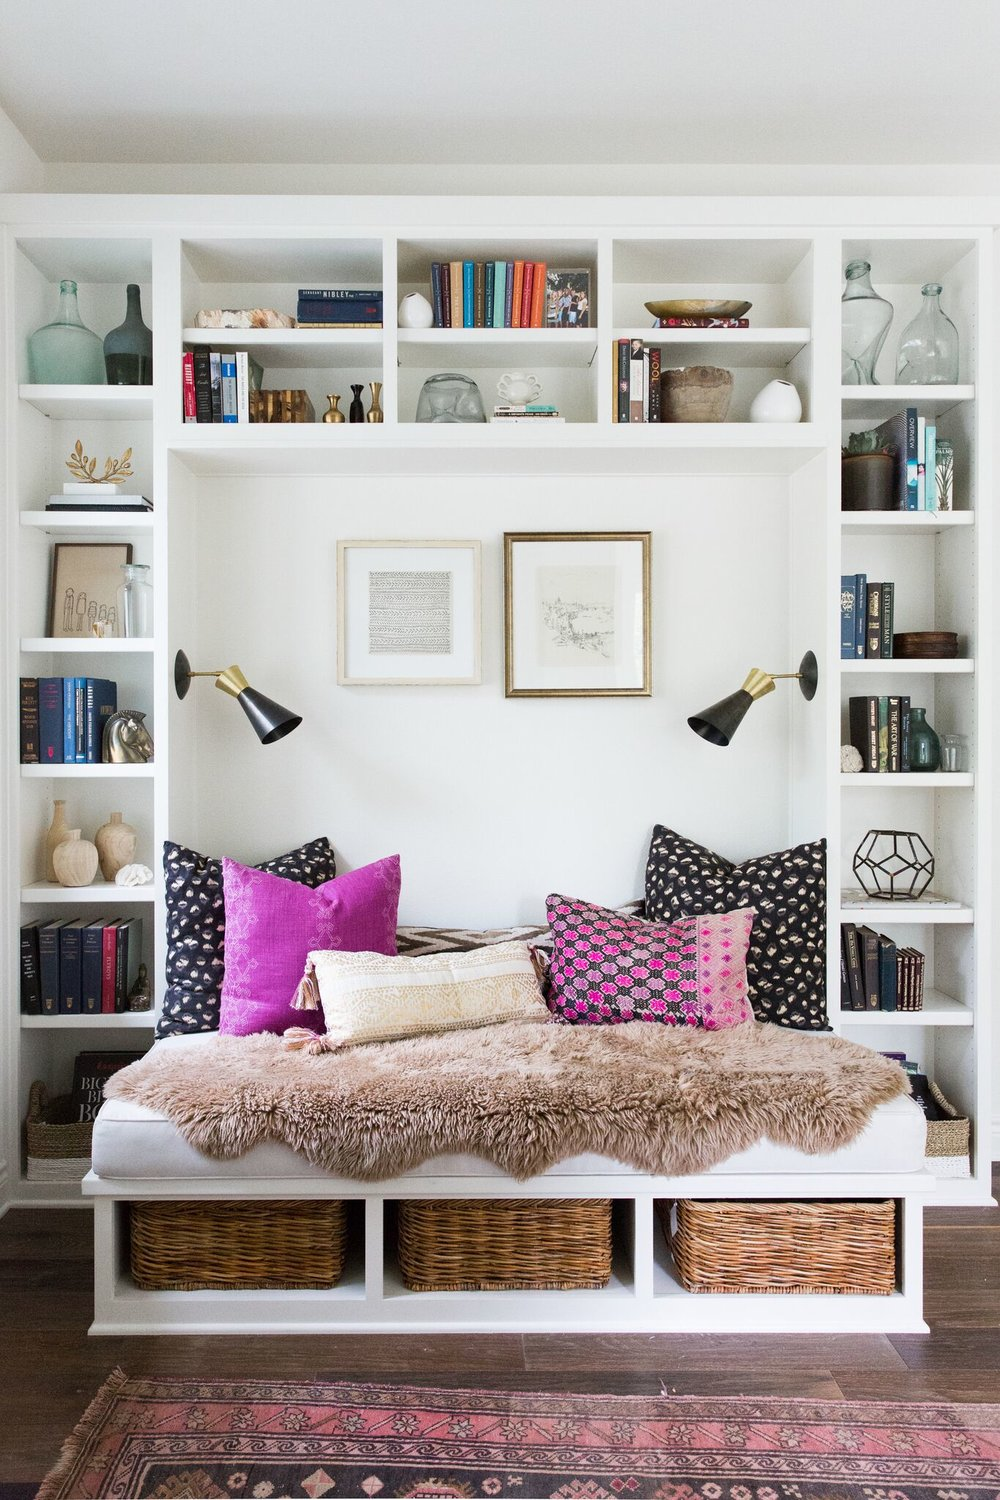 12Nook+with+Open+Shelf+Styling.jpg